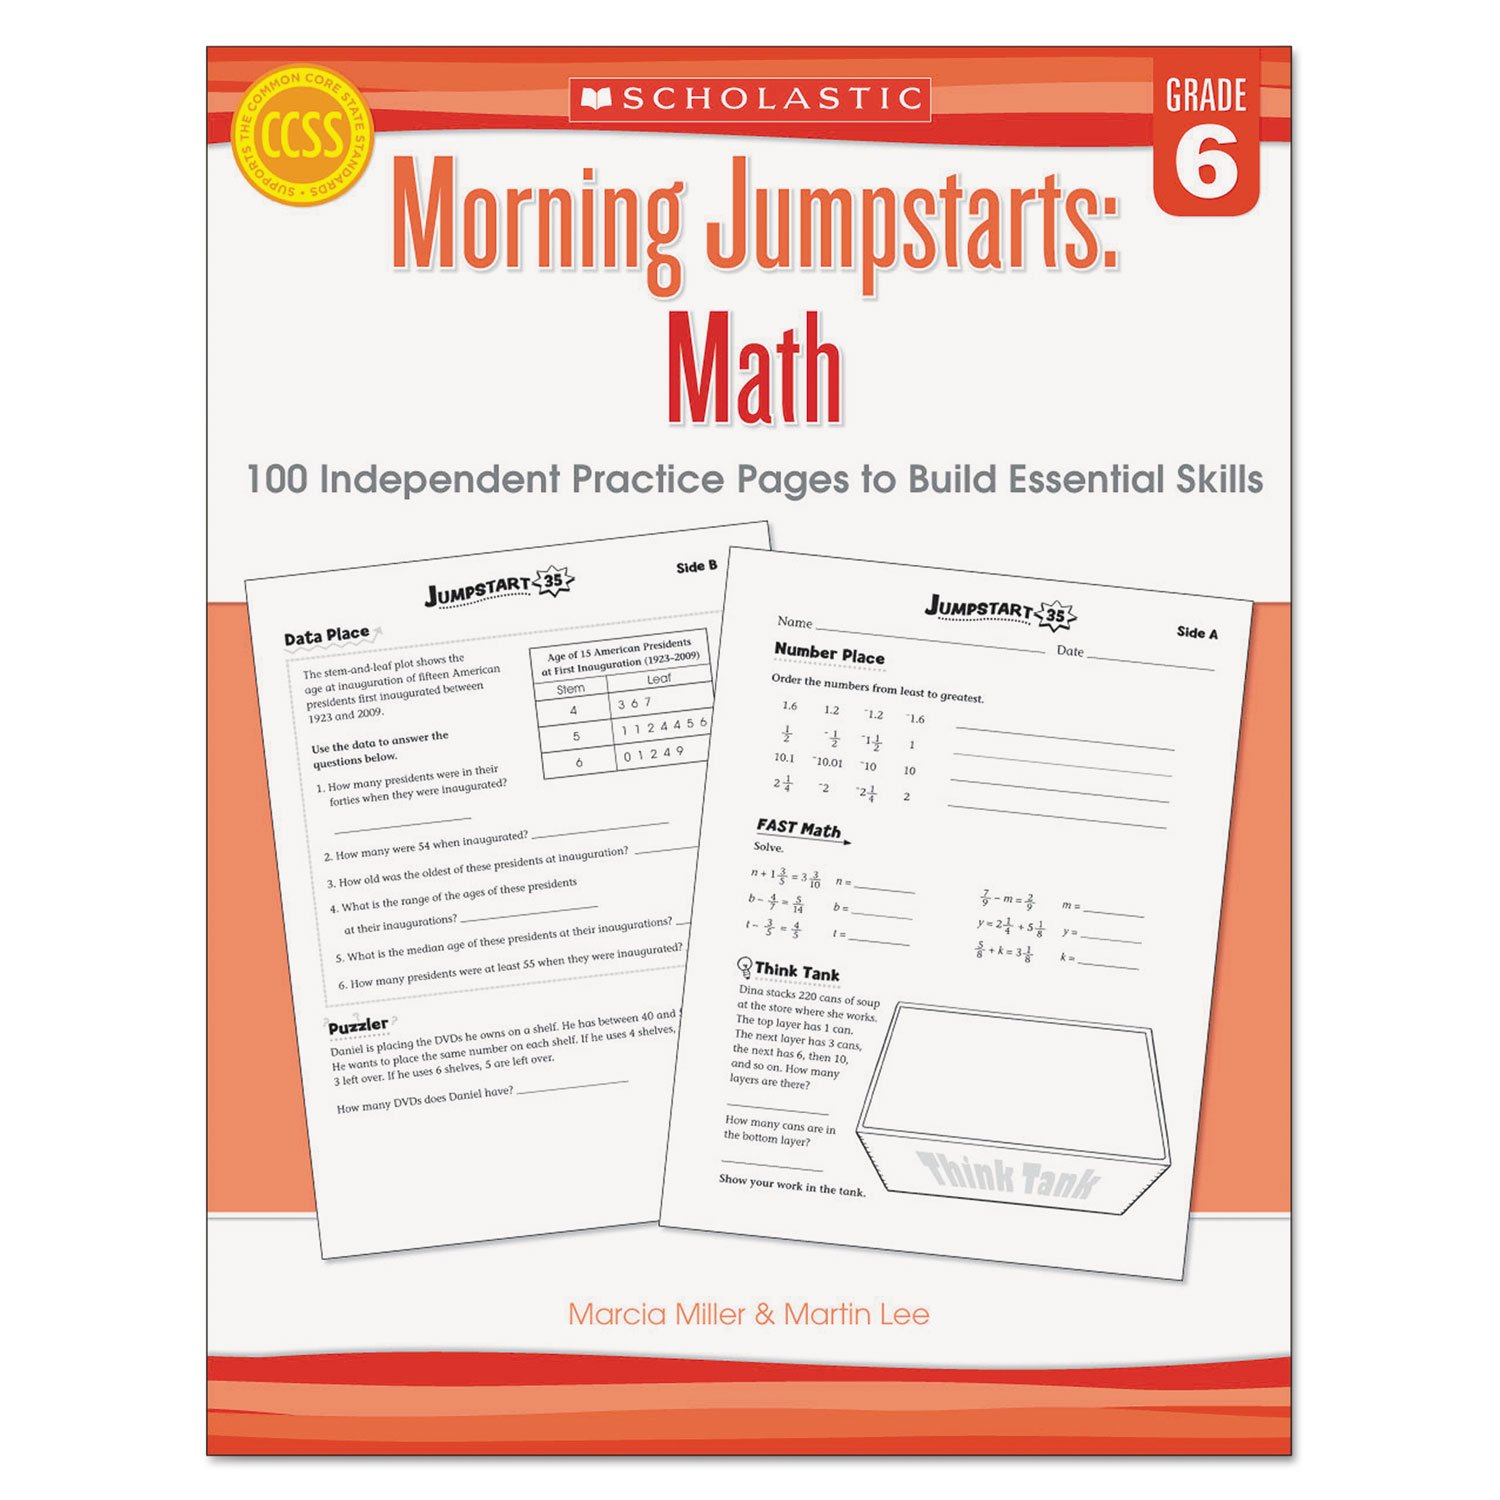 Scholastic Morning Jumpstart Series Book, Math, Grade 6 (SHSSC546419)